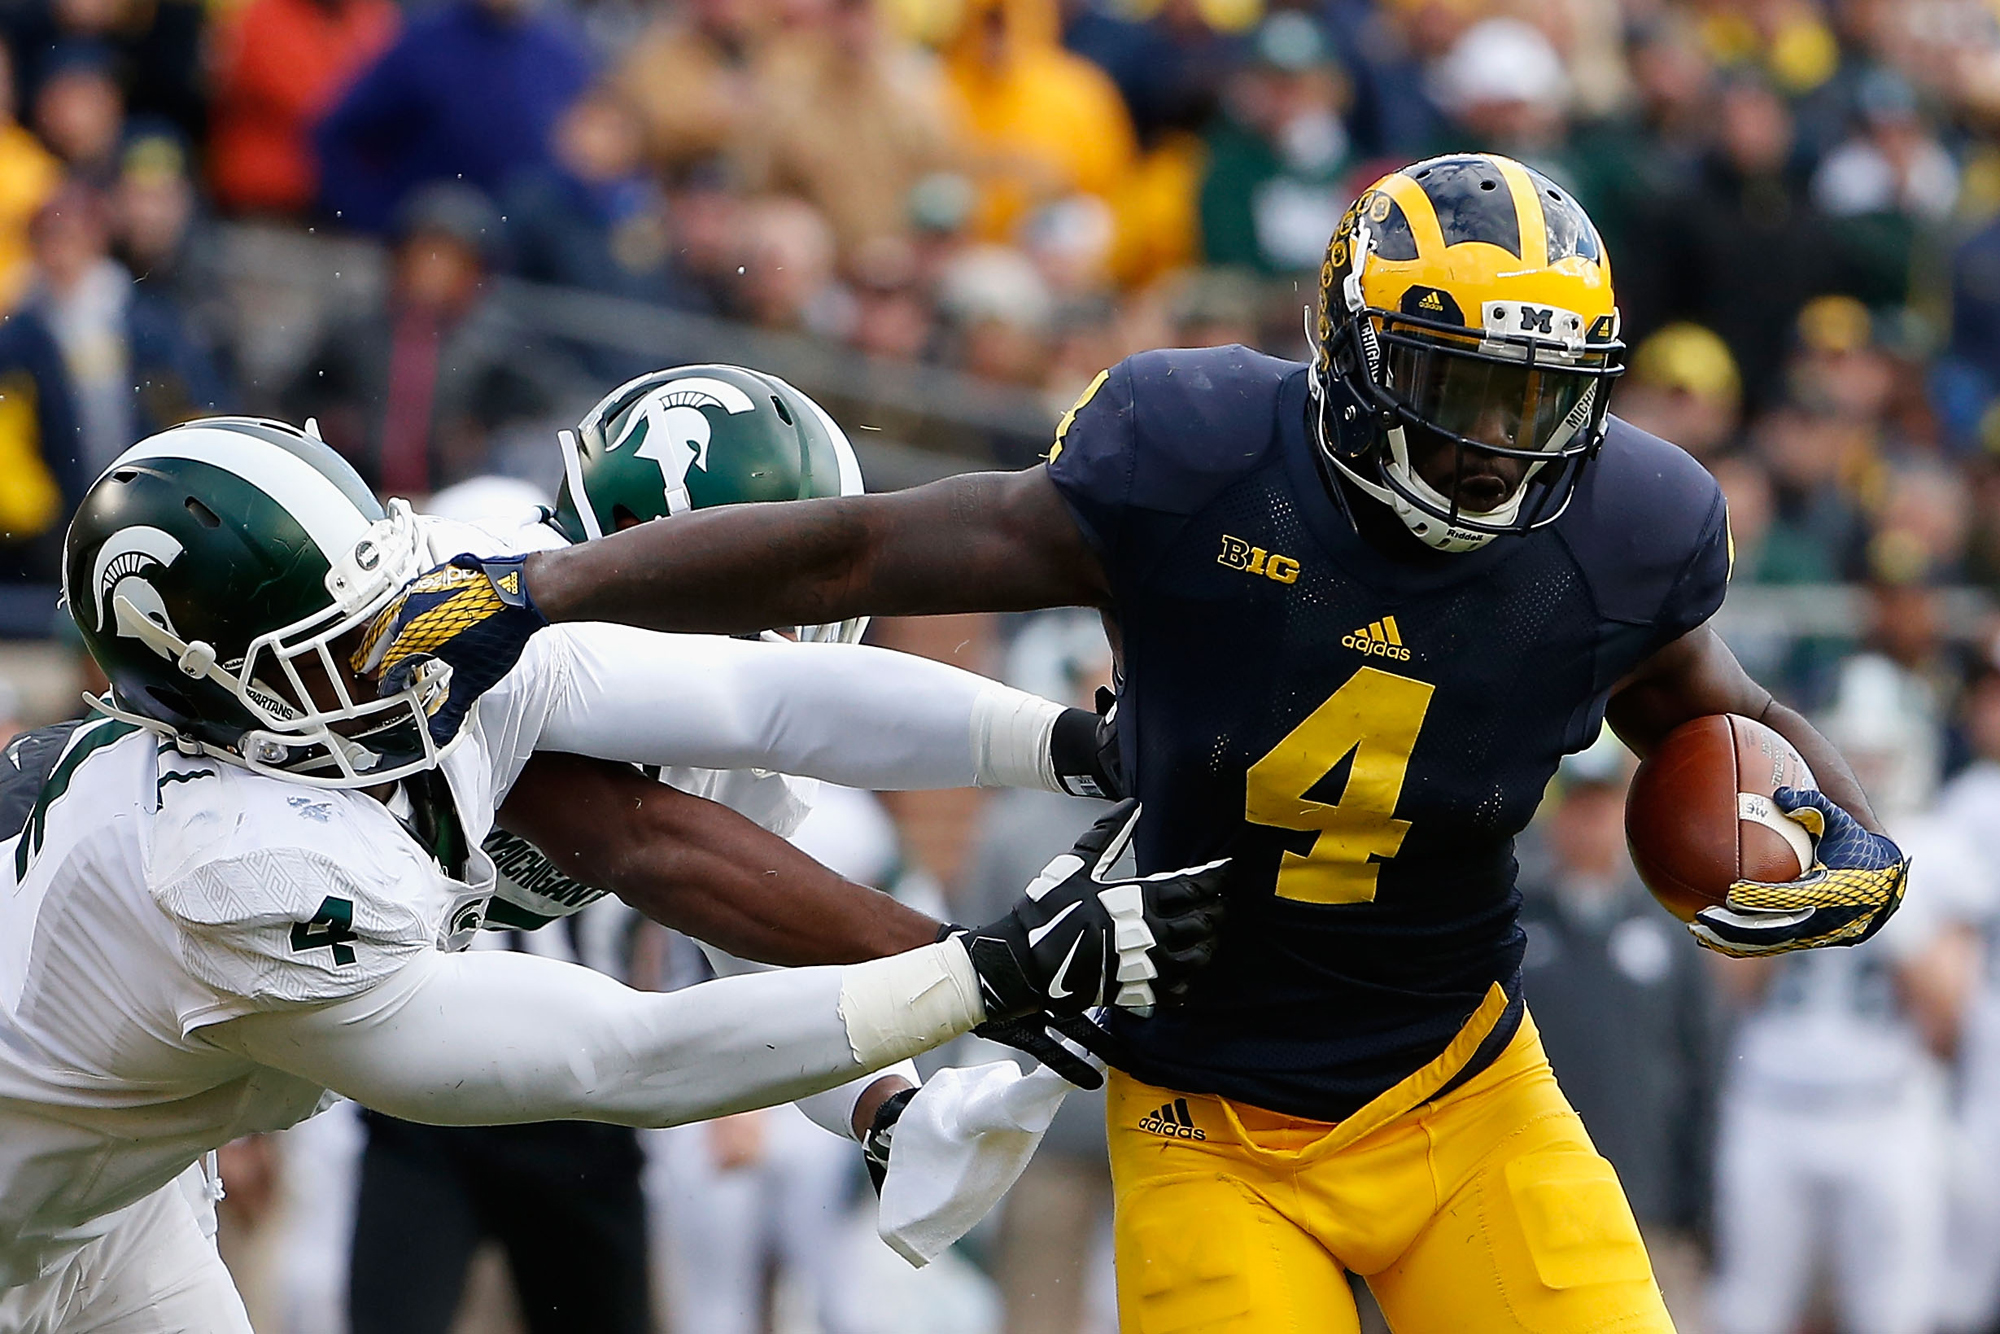 Running back De'Veon Smith #4 of the Michigan Wolverines runs with the football during the college football game against the Michigan State Spartans at Michigan Stadium on October 17, 2015 in Ann Arbor, Michigan. The Spartans defeated the Wolverines 27-23.